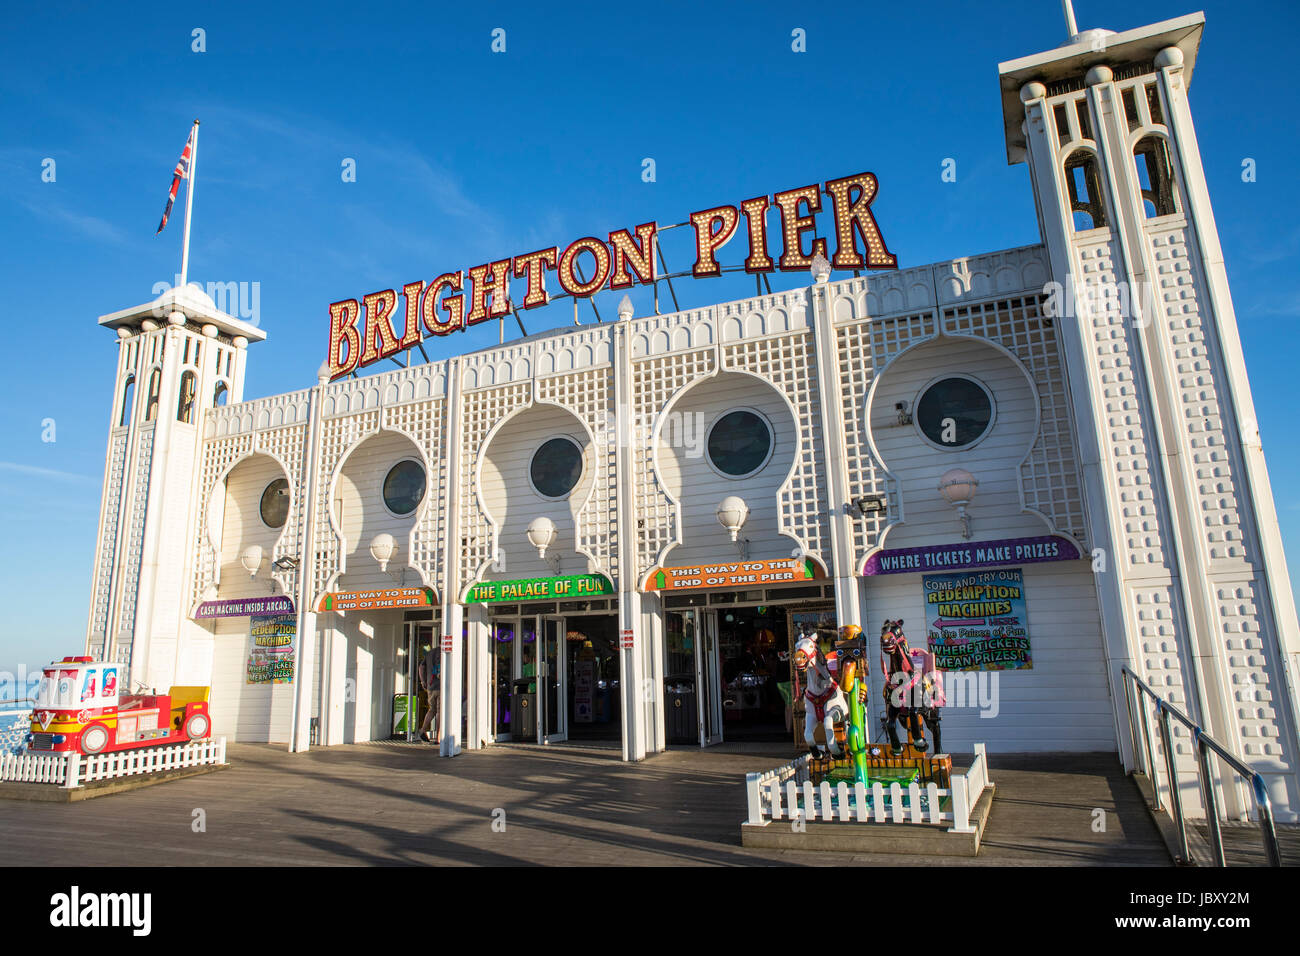 BRIGHTON, UK - MAY 31ST 2017: A view of the main building housing amusements on the historic Brighton Pier in Brighton, - Stock Image